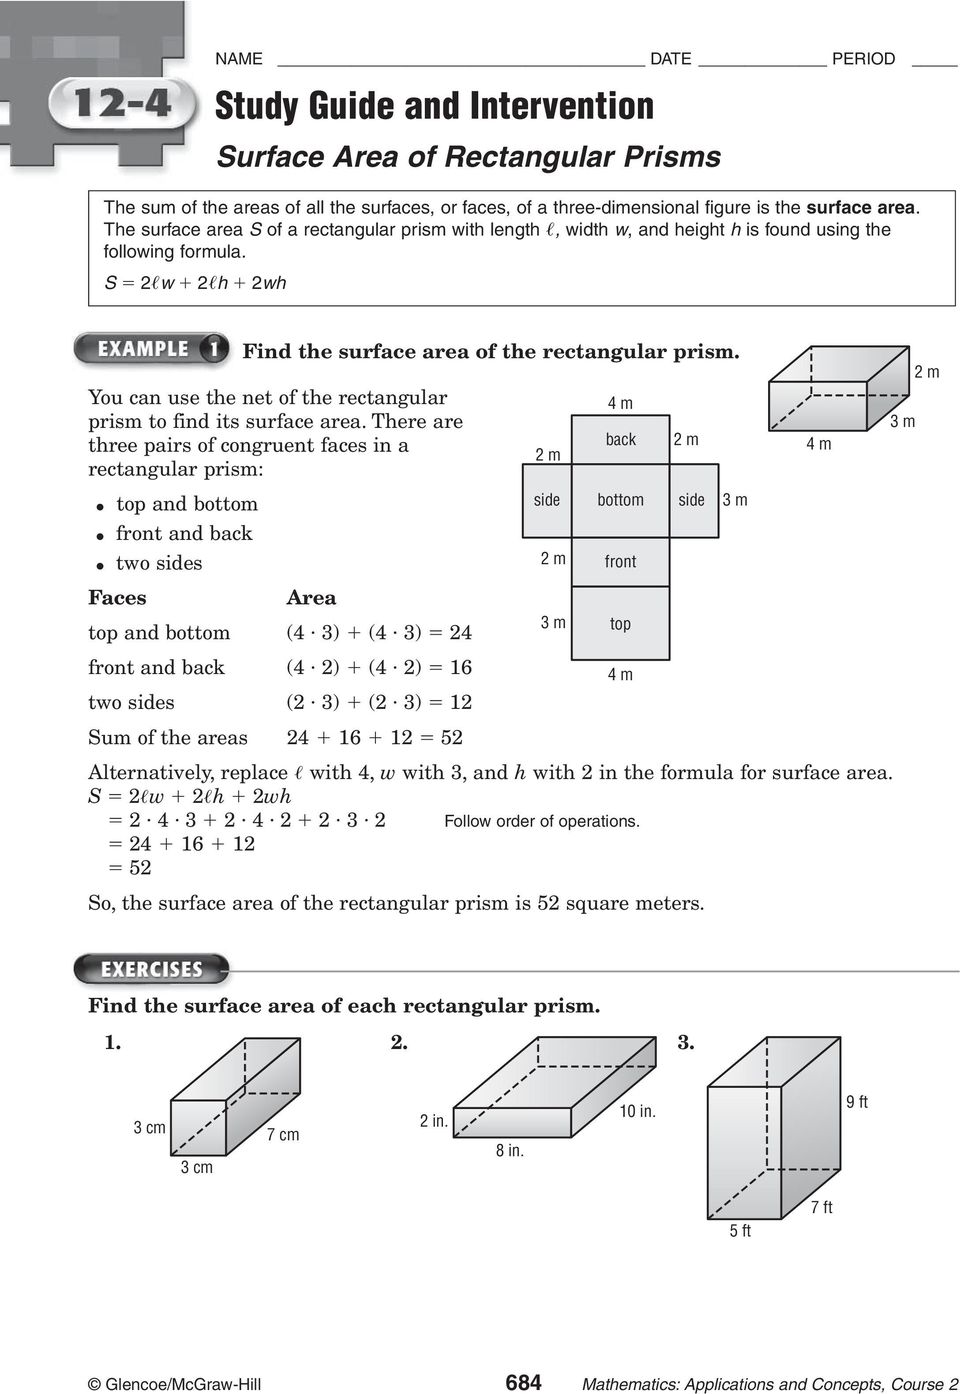 You can use the net of the rectangular prism to find its surface area.